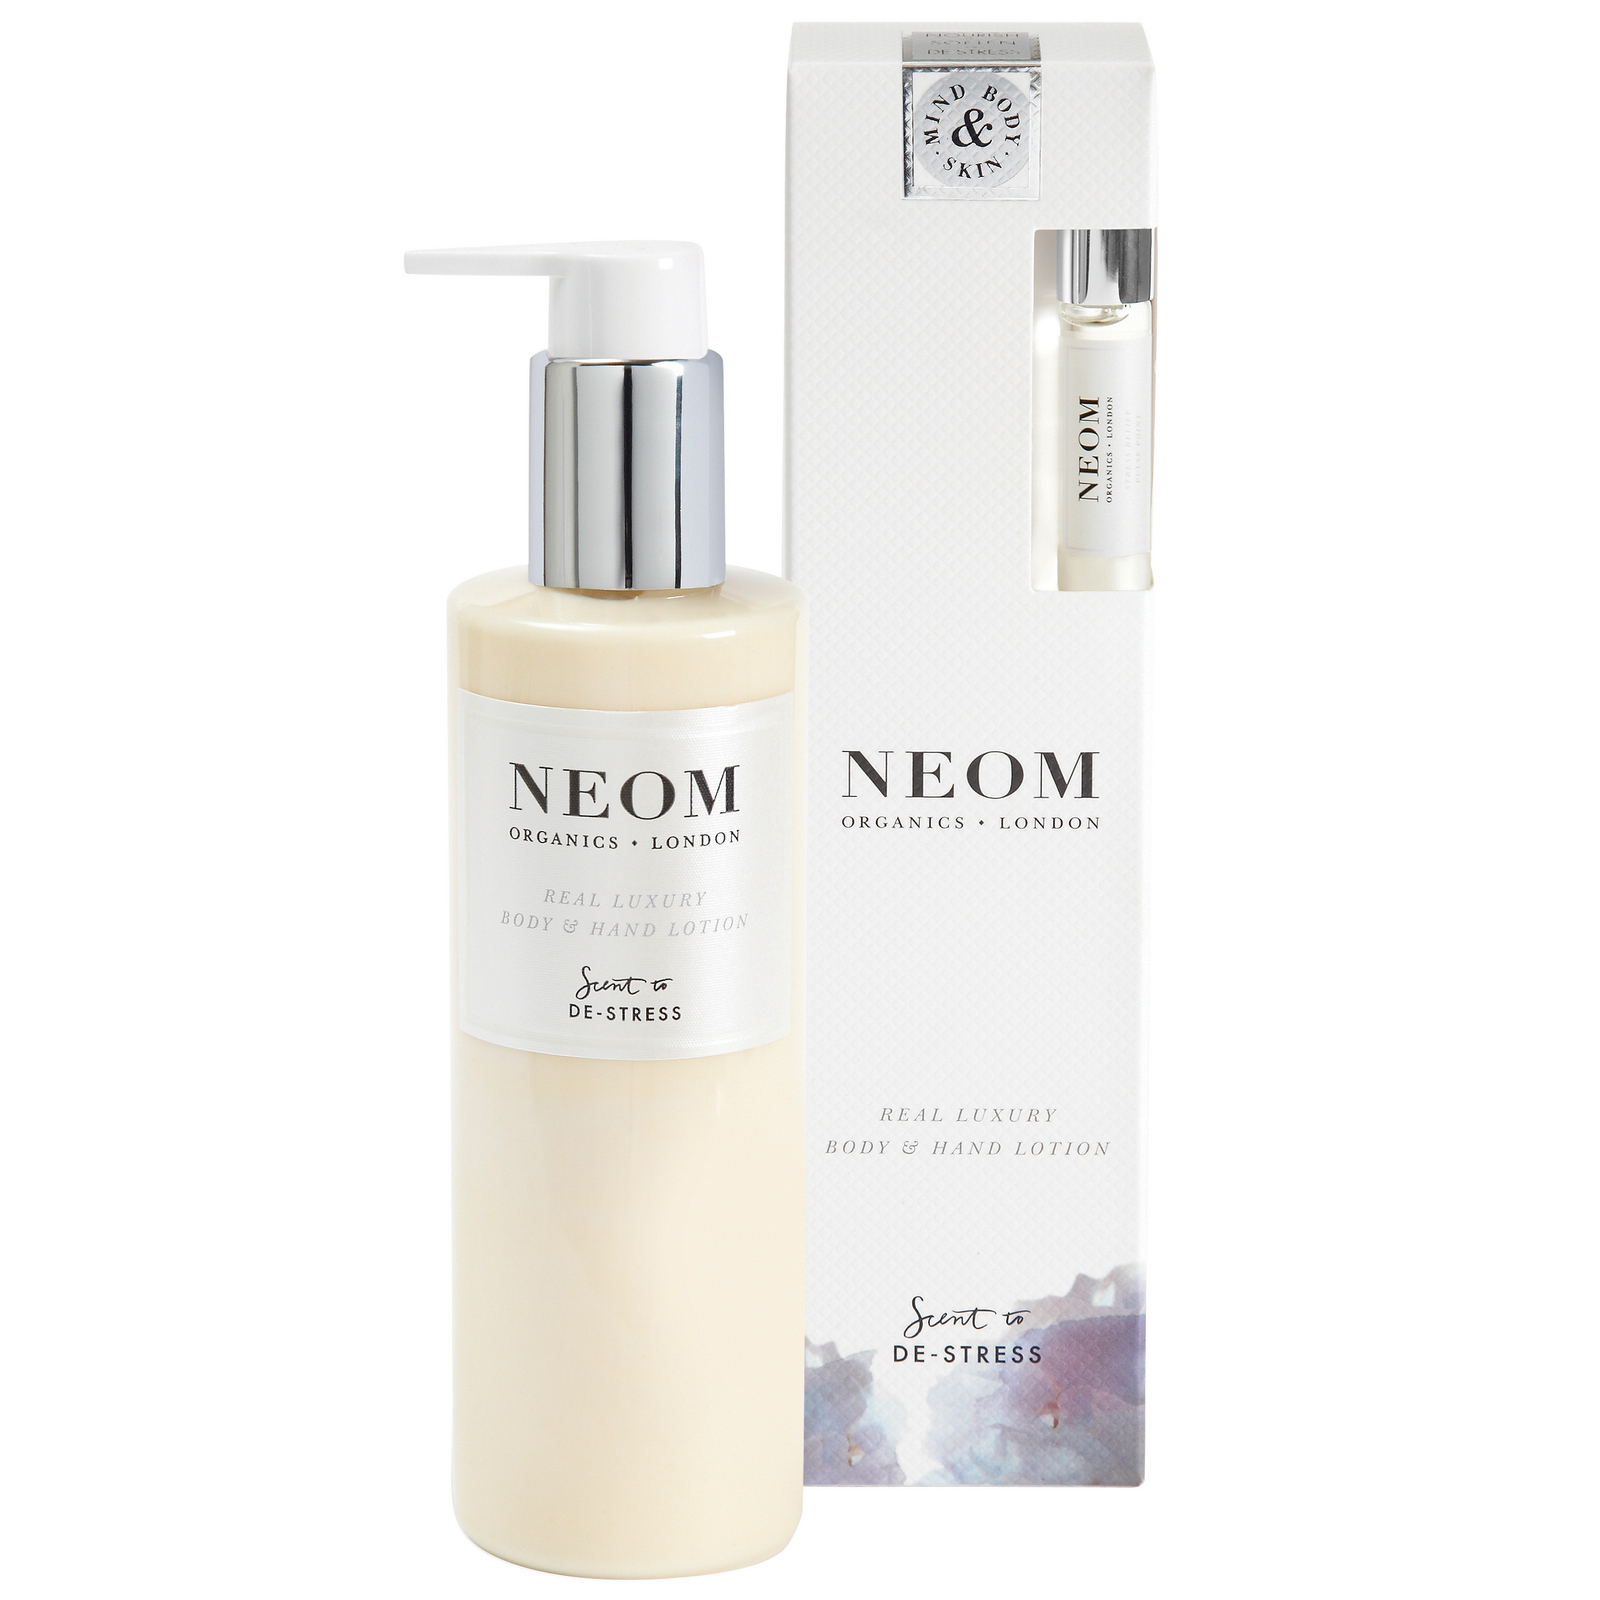 Neom Organics London Scent To De-Stress Real Luxury Body & Hand Lotion 250ml + Free Stress Relief Pulse Point 5ml